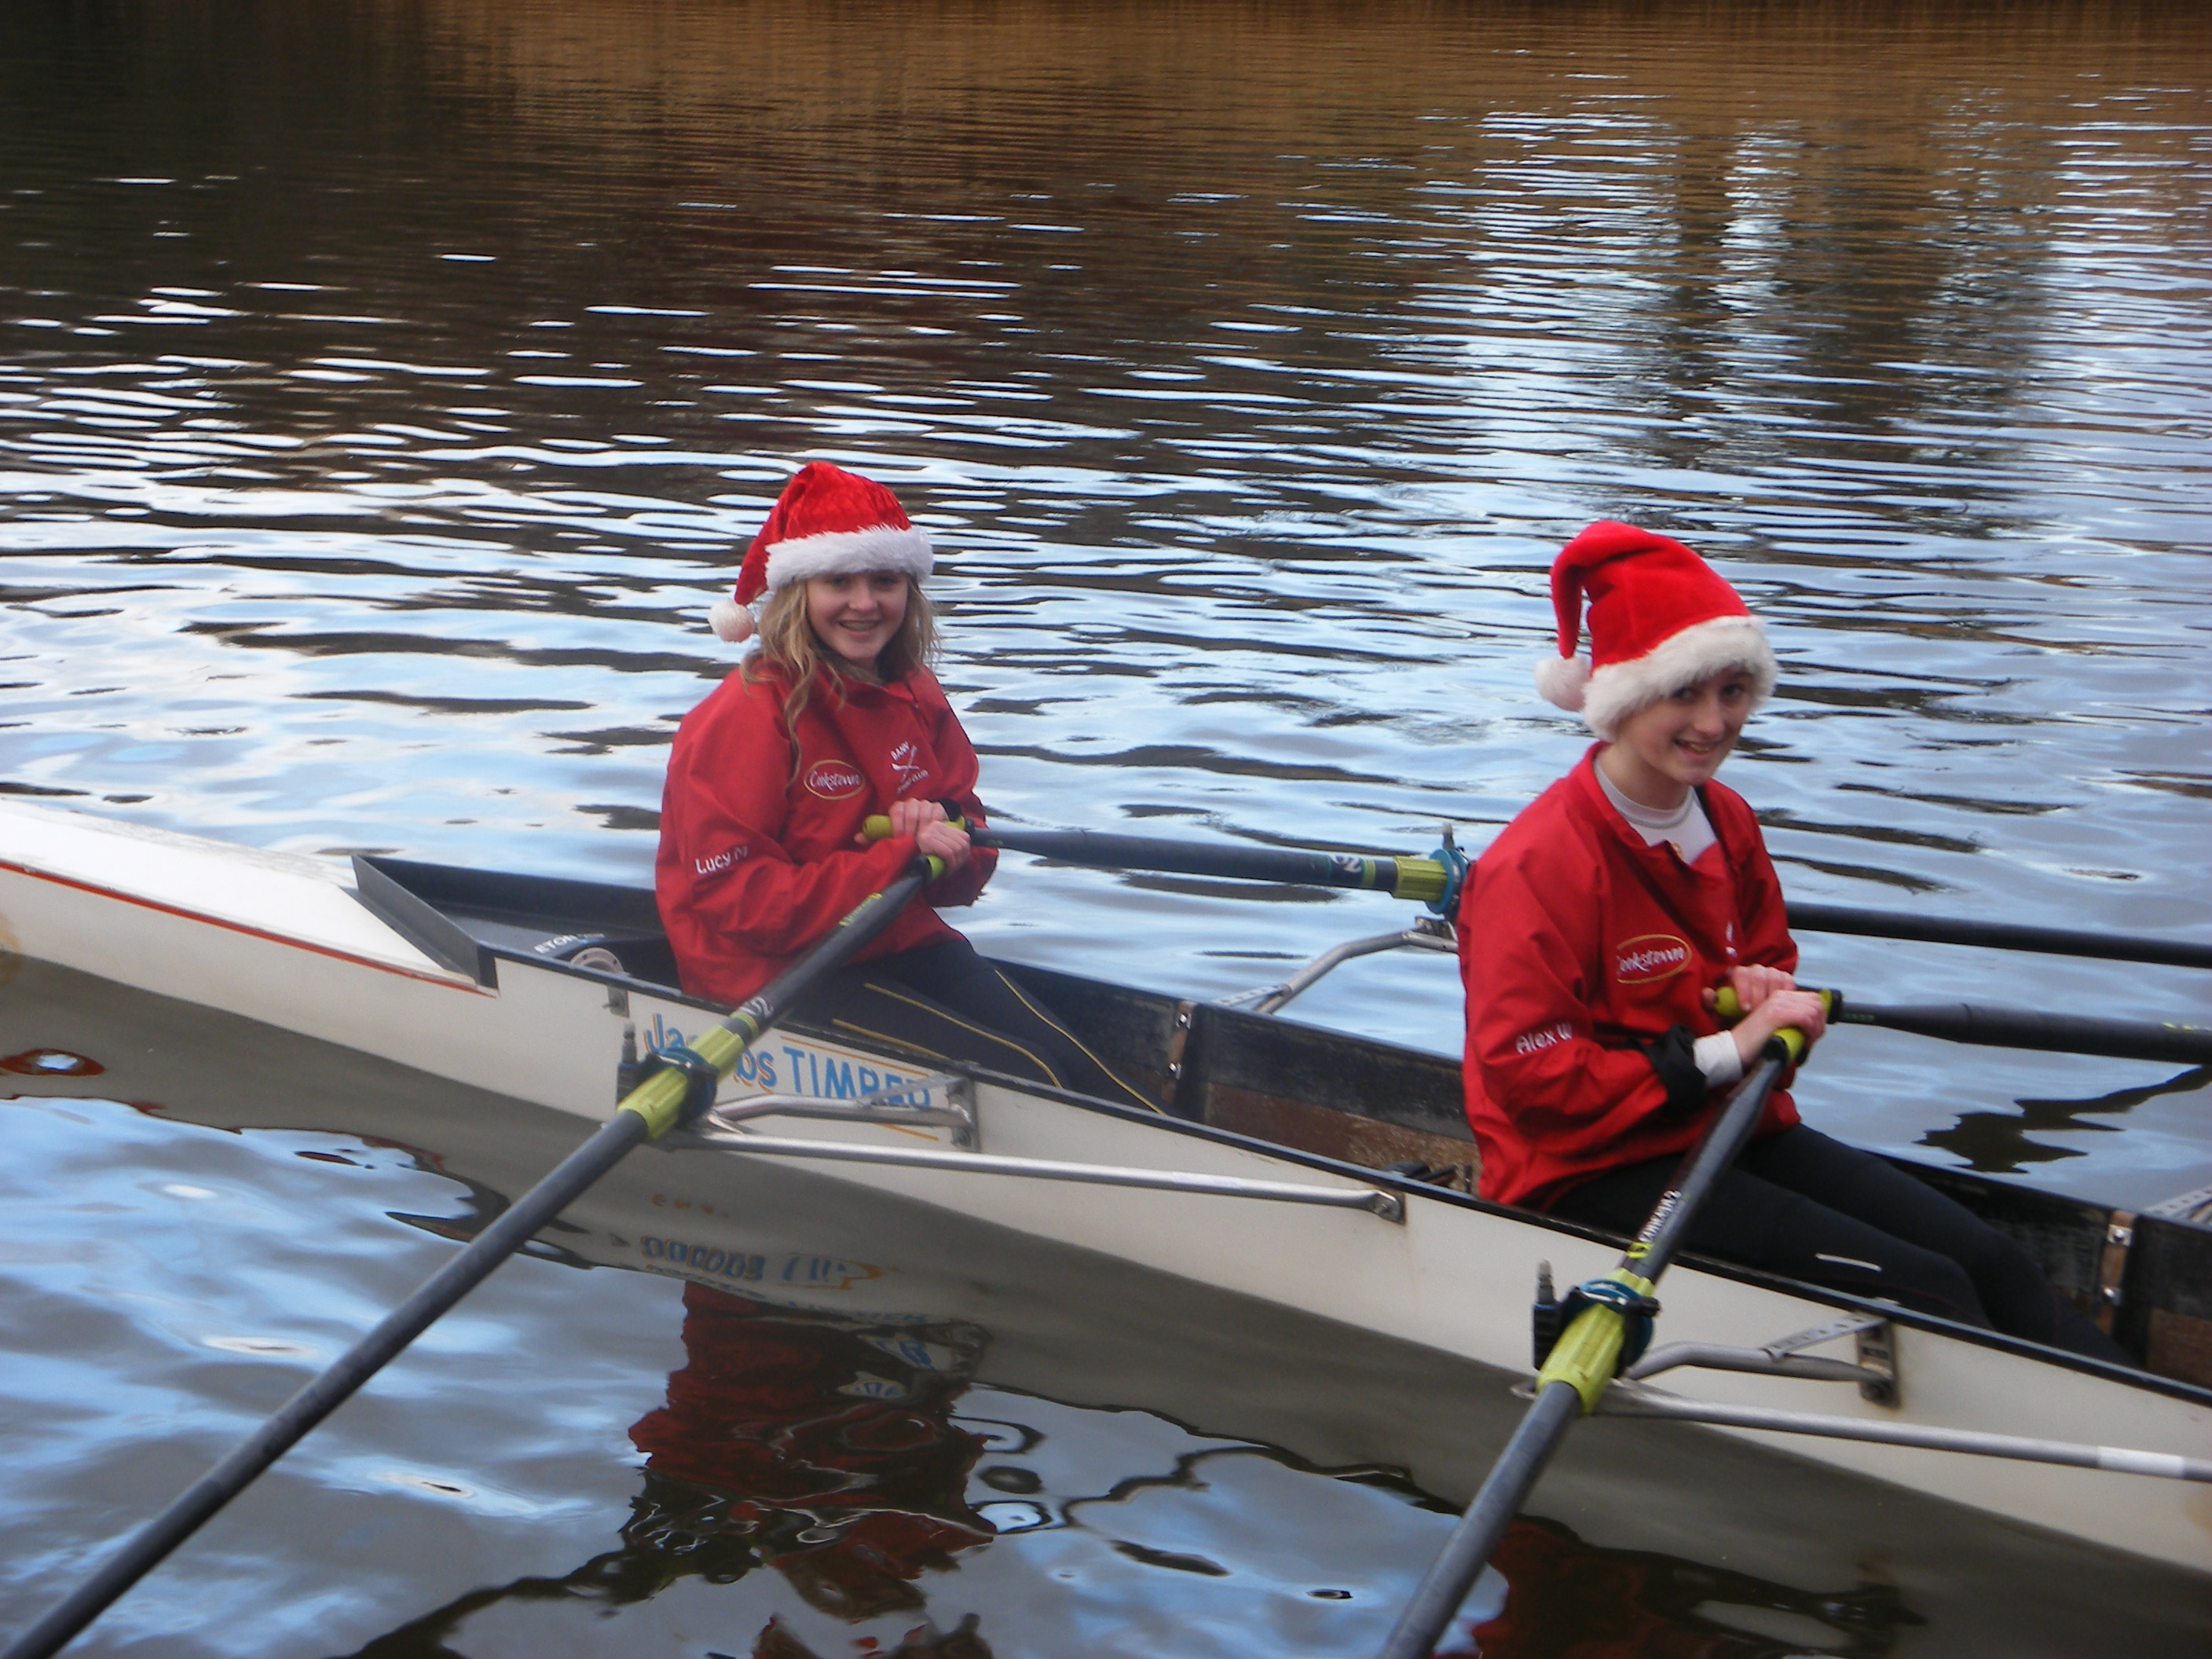 wj15-4x-lagan-festive-head-2011_0